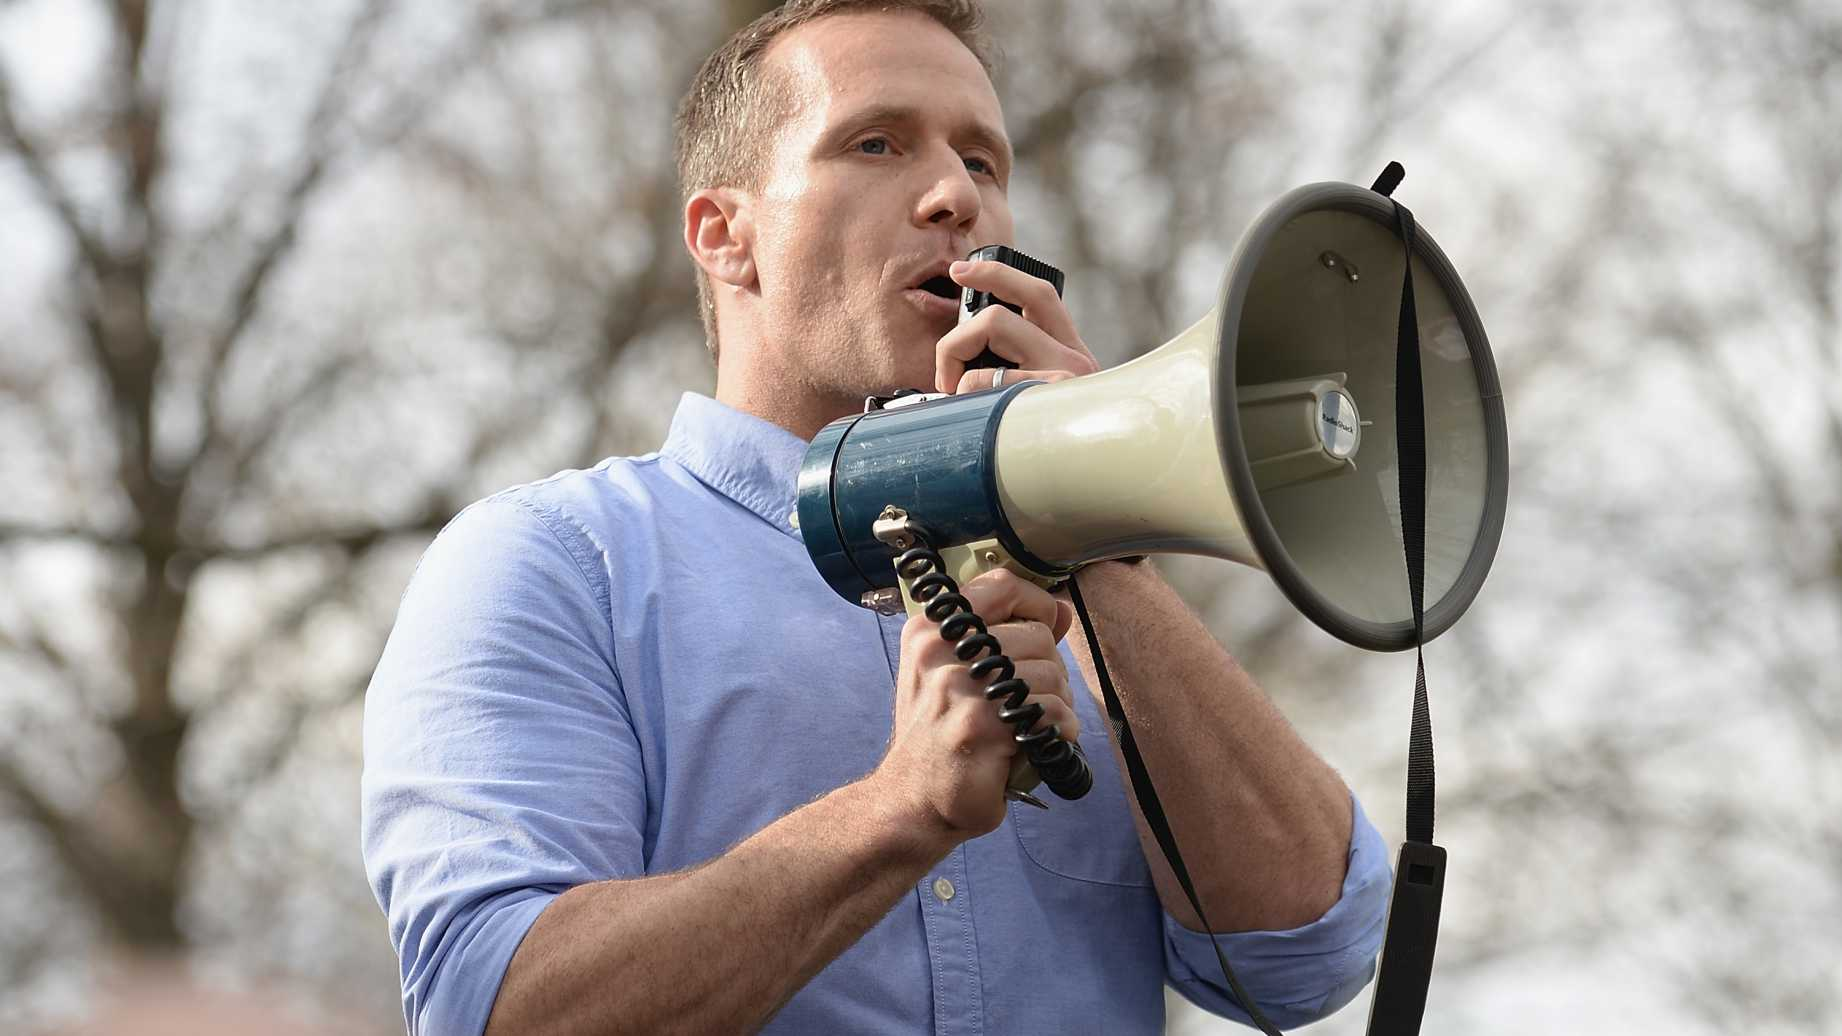 Missouri Governor Indicted for Nonconsensual Photo of Woman